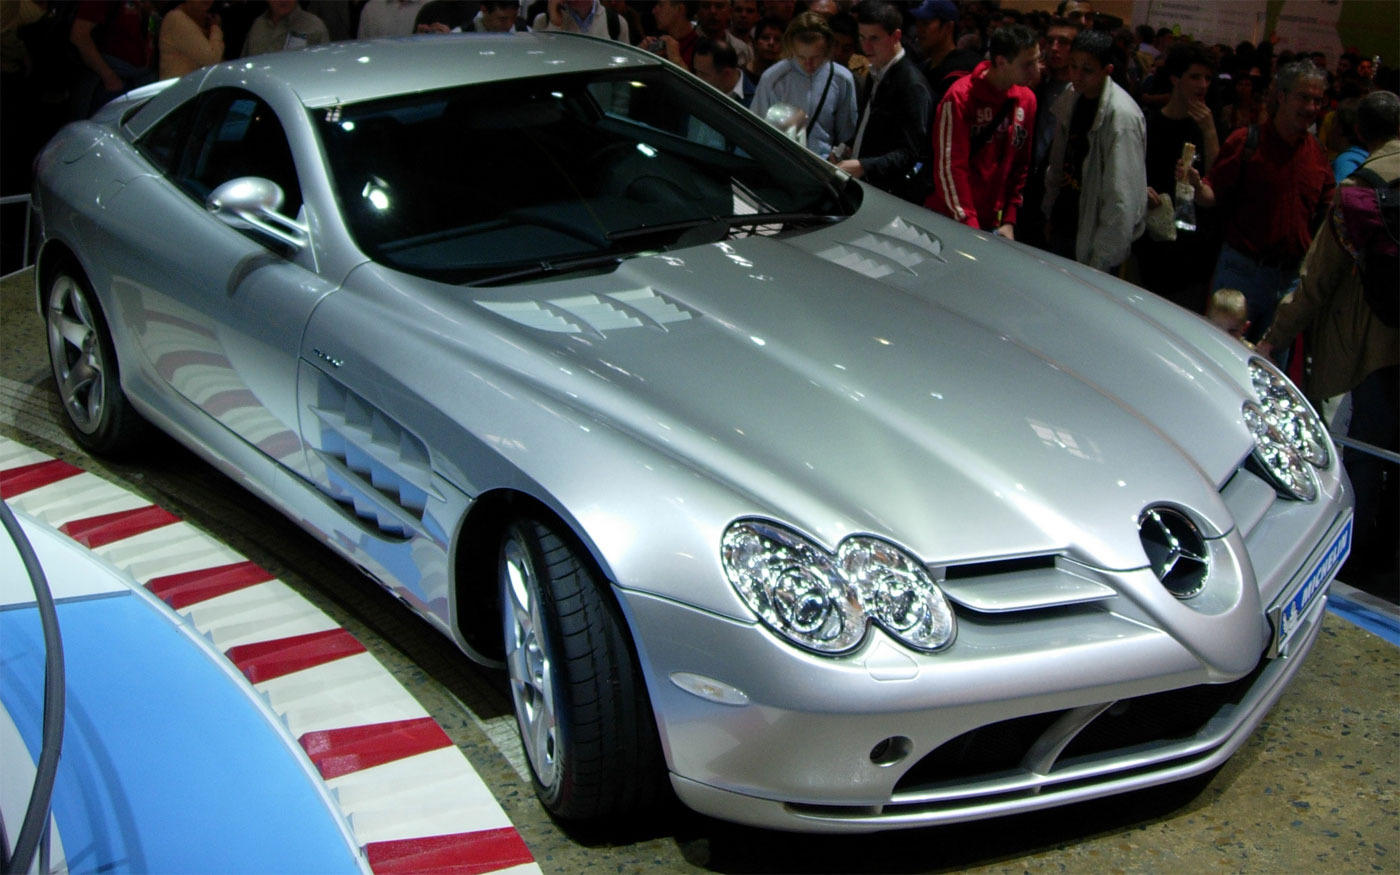 Tremendo Accidente De Un Mercedes Benz Slr Coches 2 0